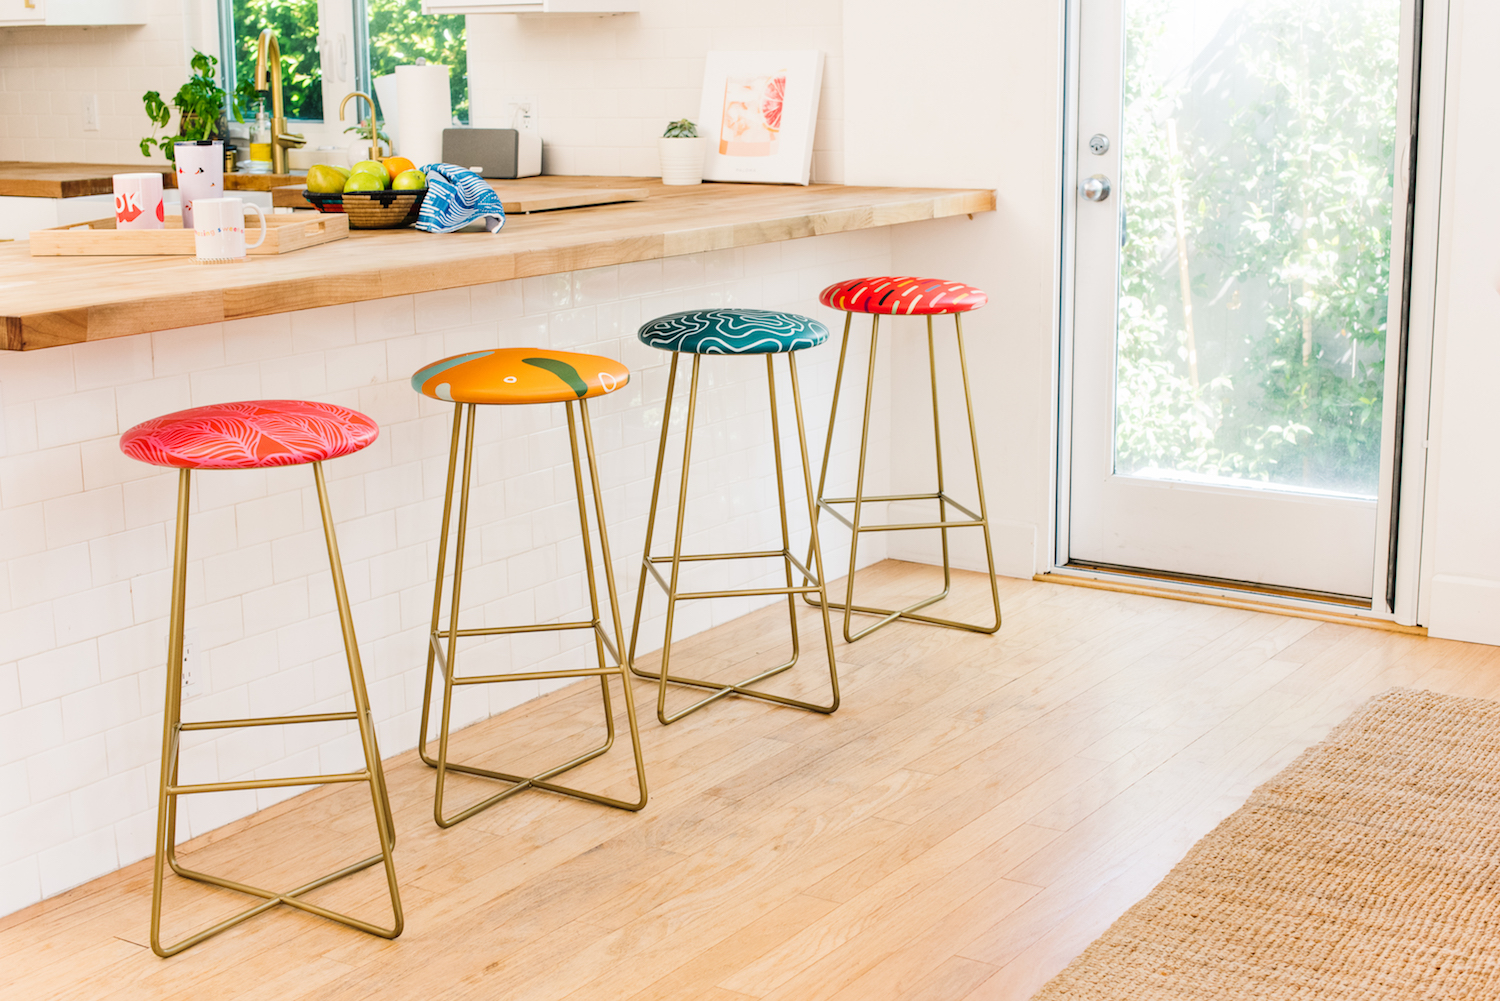 Countertops For Bars Our Foolproof Guide To Buying The Right Bar Stools Society6 Blog